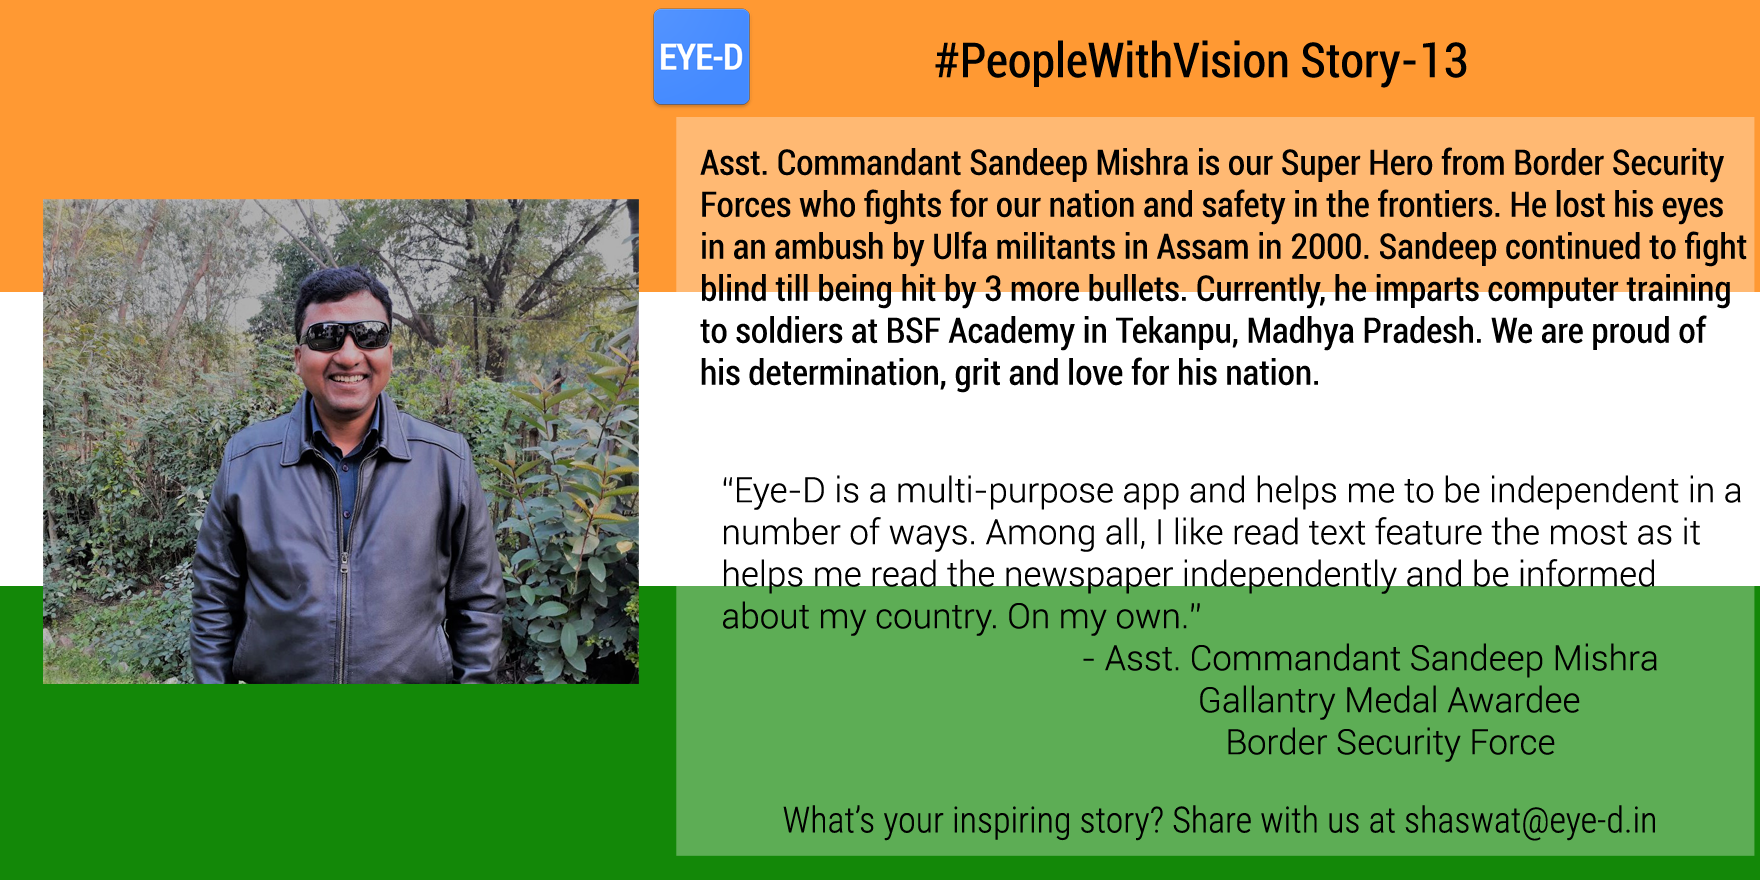 Asst. Commandant Sandeep Mishra's PeopleWithVision story talks about the harsh incident where Sandeep lost his eyes in ambush with militants and his love for his country which kept him continue fighting even after being blindfolded. The story also shares Sandeep's experience with Eye-D and it is enabling him to be informed about his country on his own.